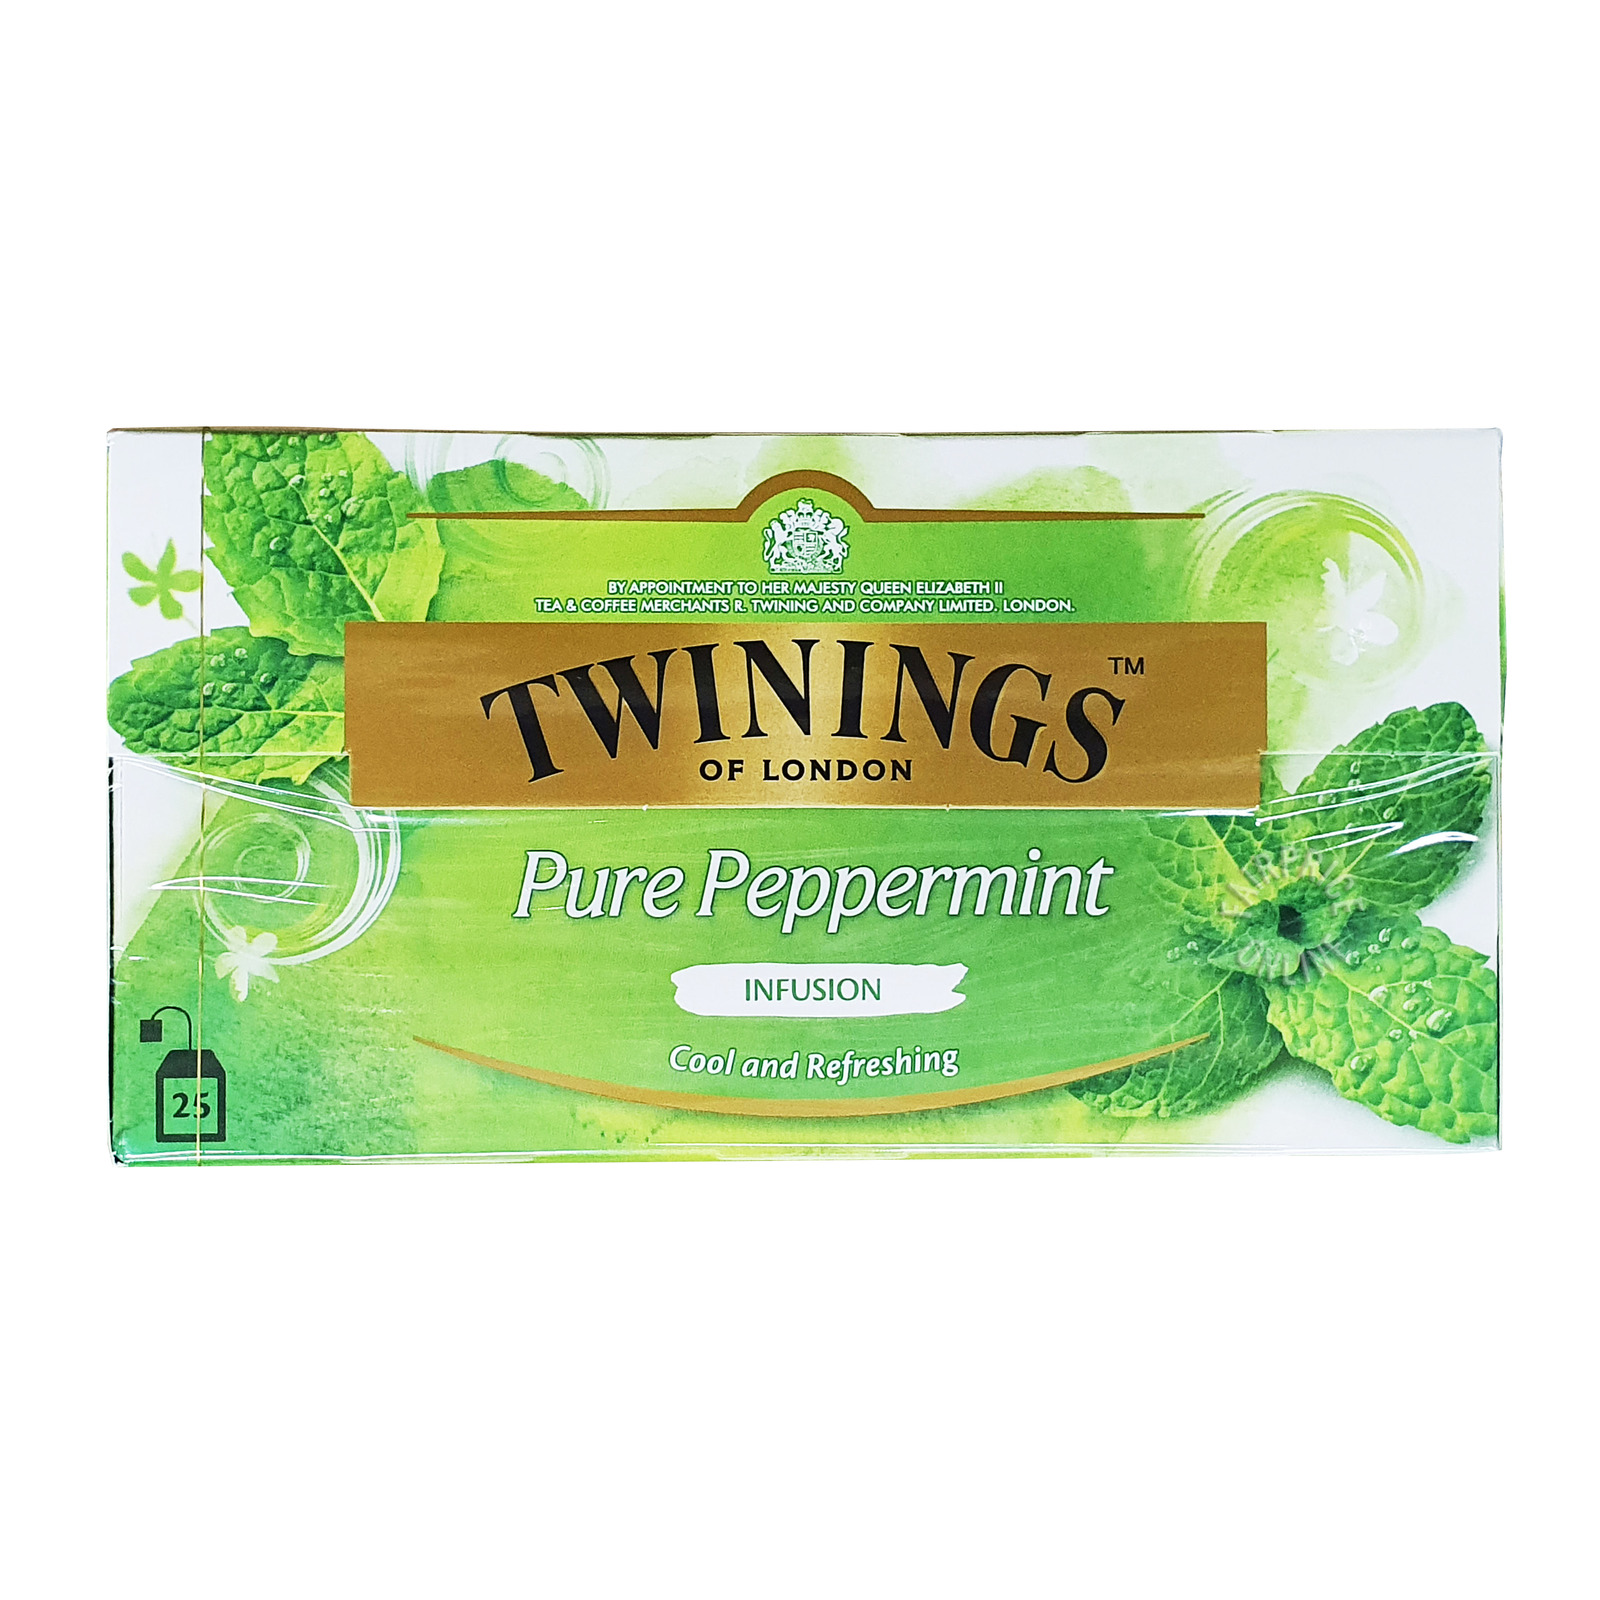 Twinings Pure Infusion Teabags - Peppermint